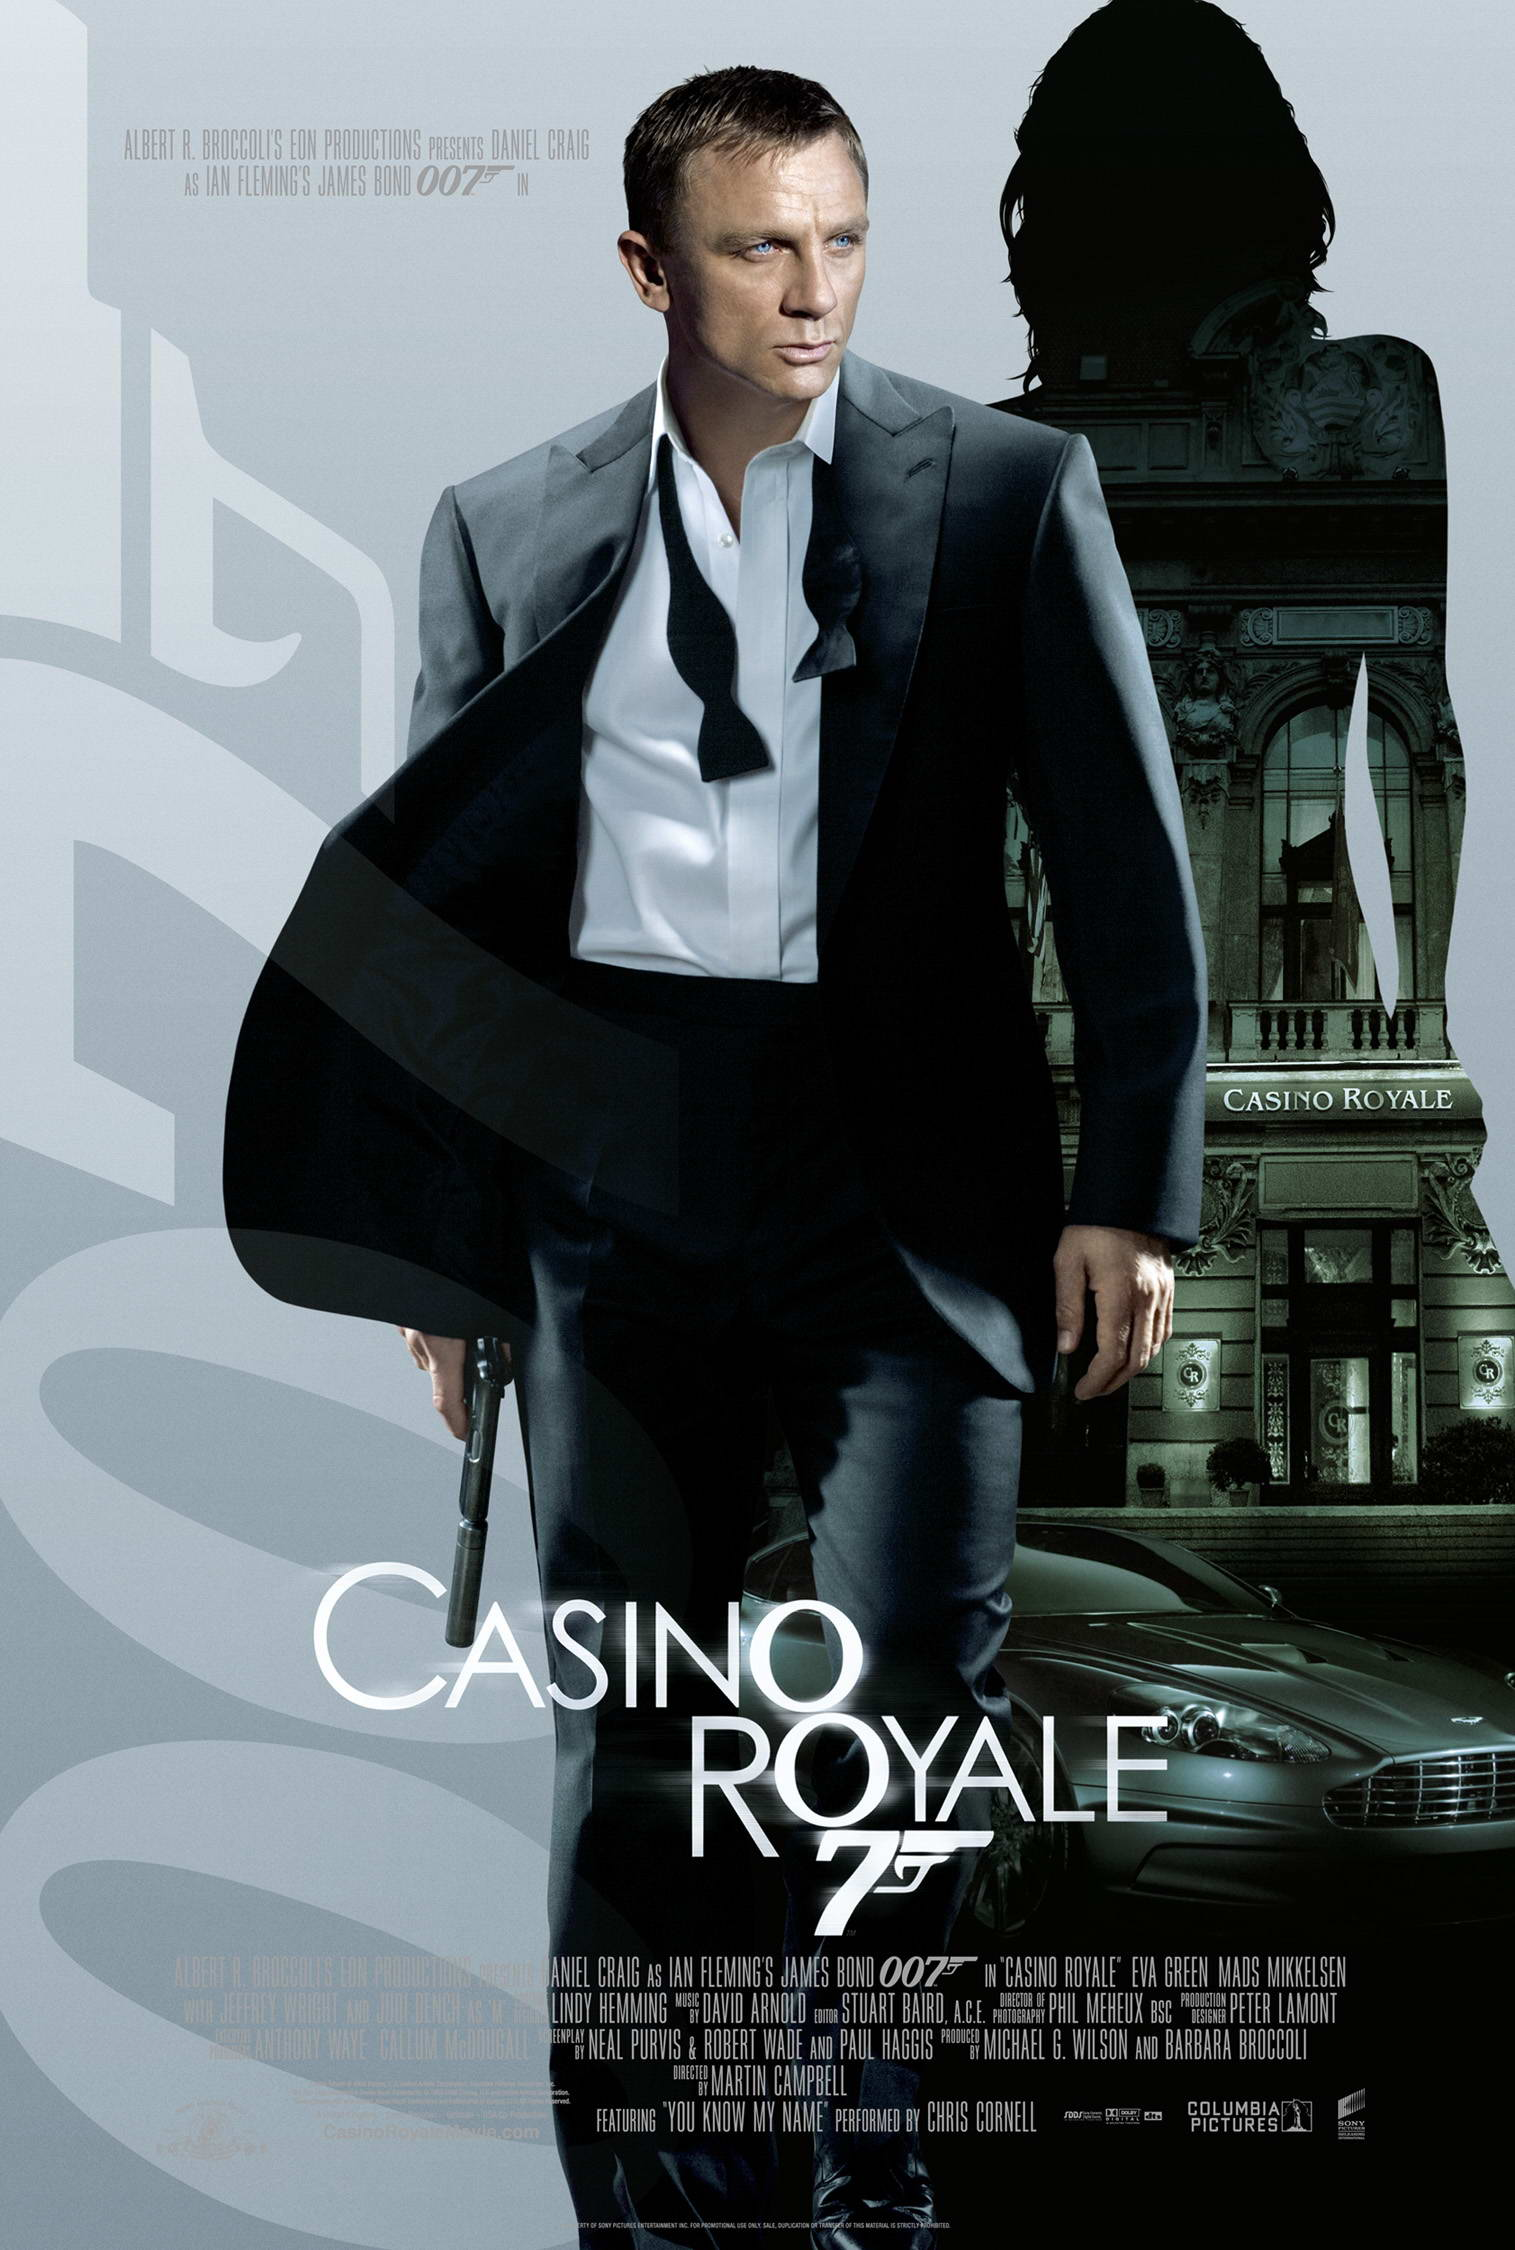 casino royale online movie free sizzling hot.com